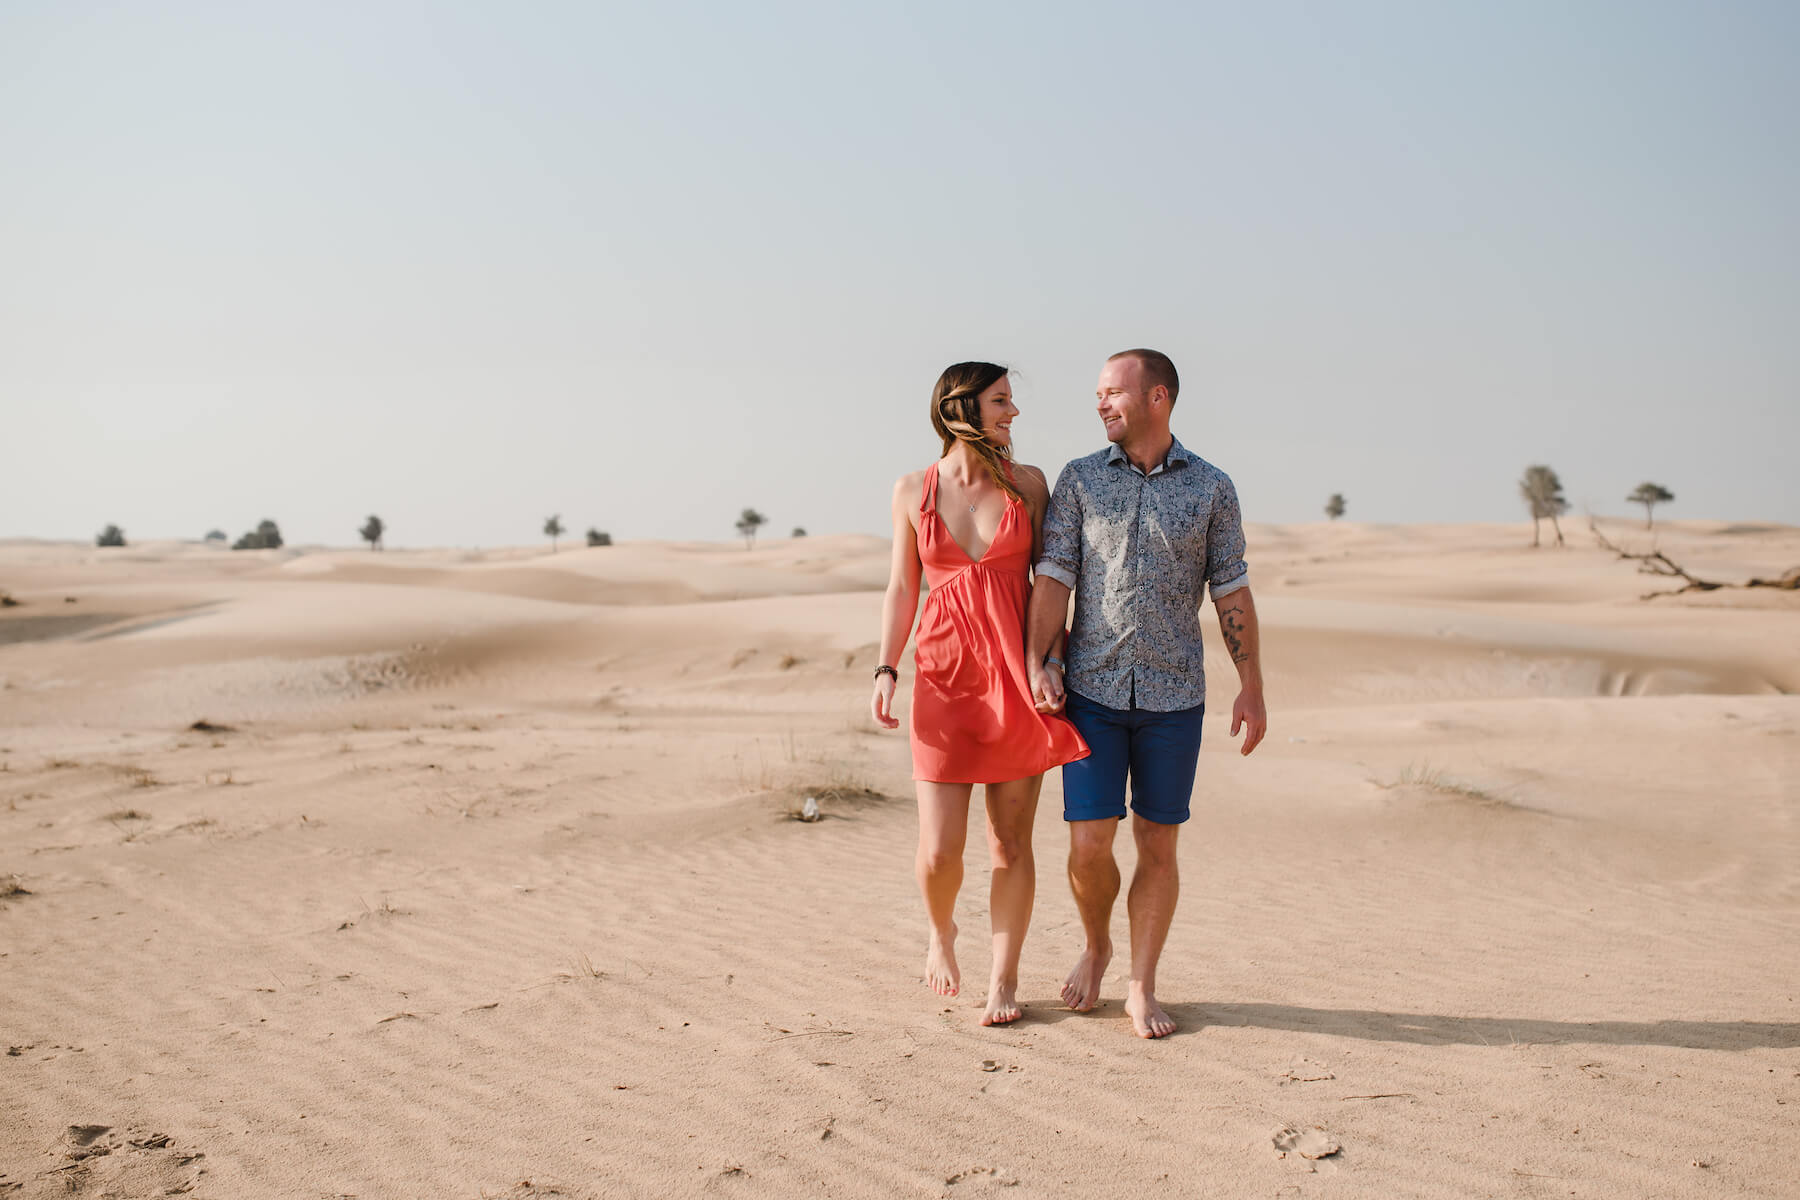 Couple smiling at each other and holding hands in the desert sands of Al Qudra Lake